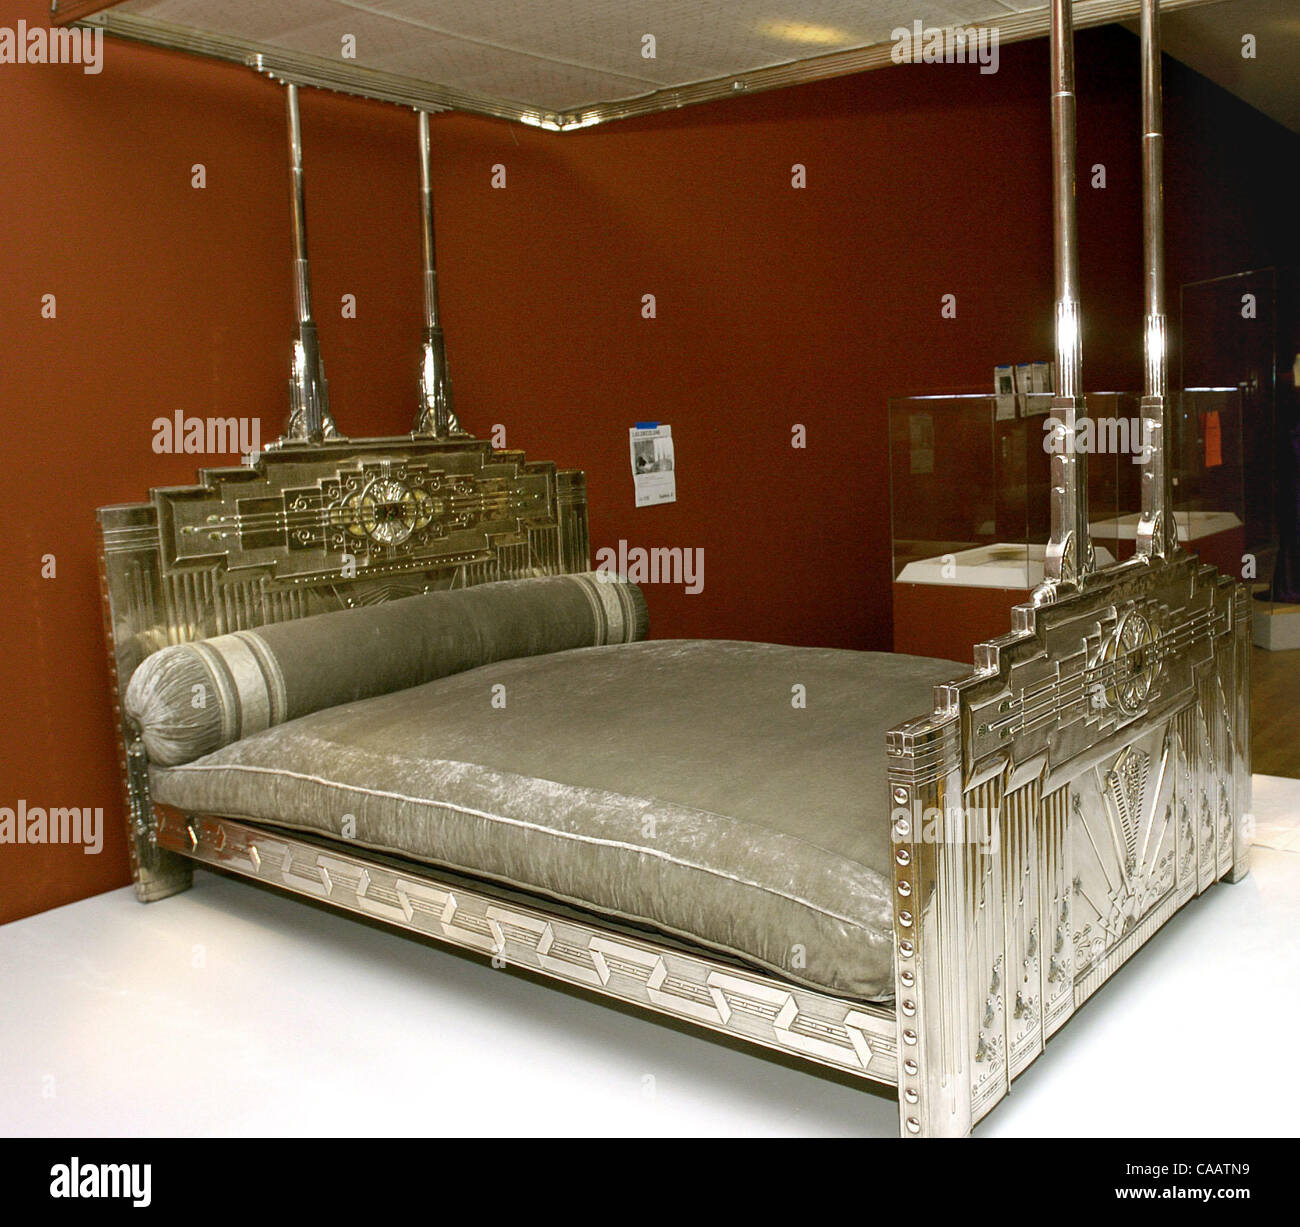 A Beautifull Silver Art Deco Bed From A Maharaja S Palace Which Will